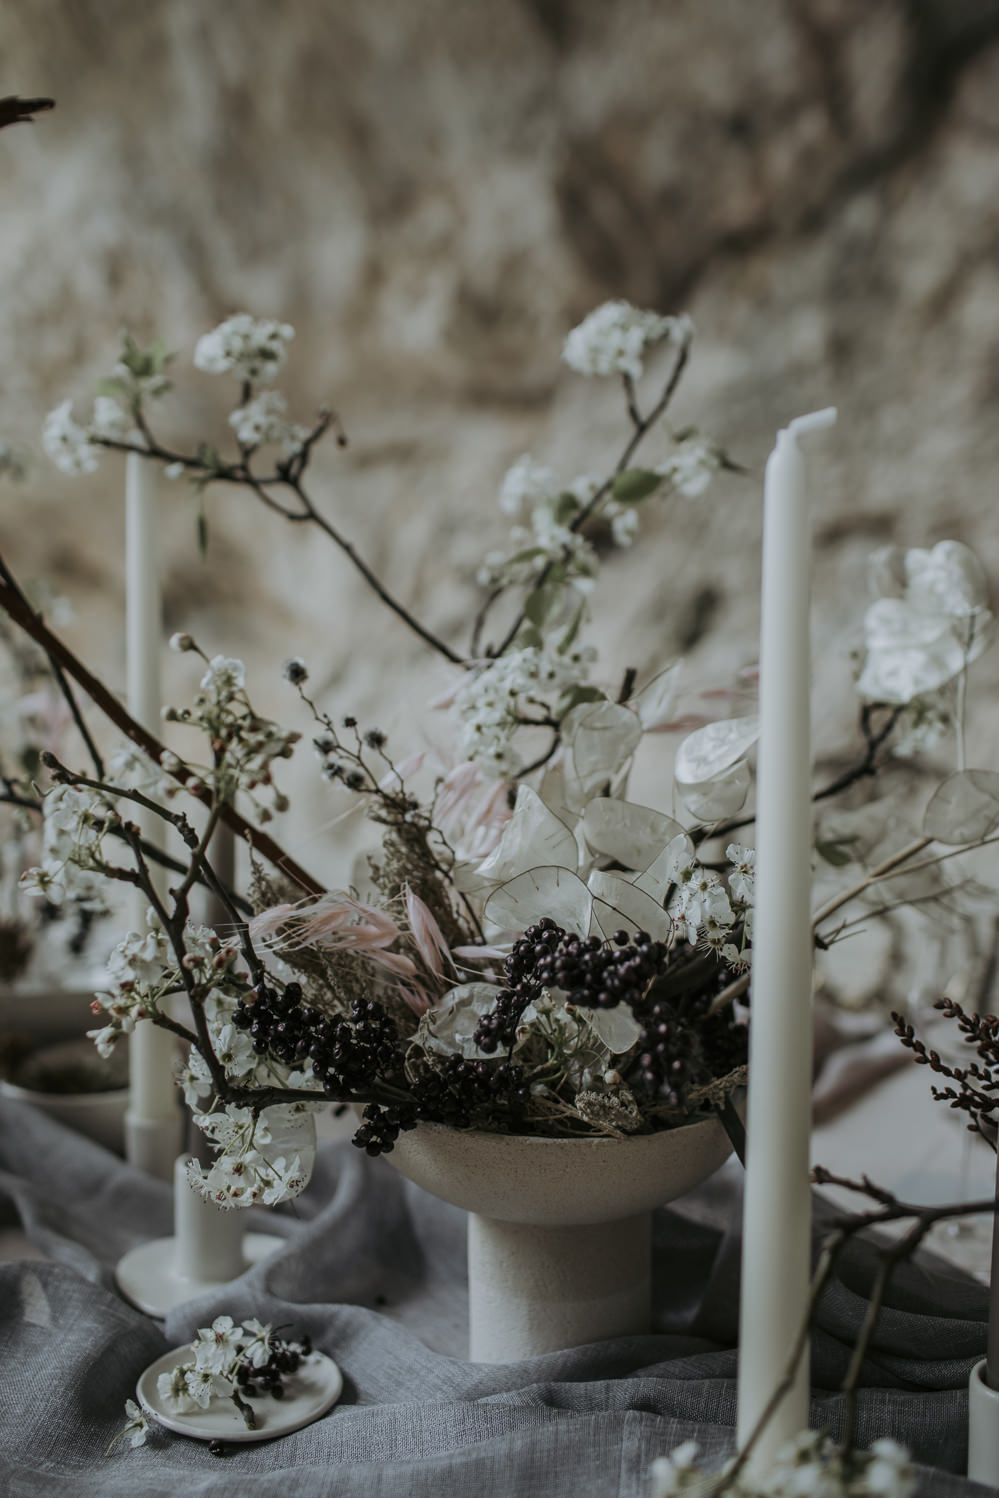 Tablescape Table Decor Candles Branches Natural Wild Neutrals Linen Flowers Urn Cave Wedding Ideas Vanessa Illi Photographer